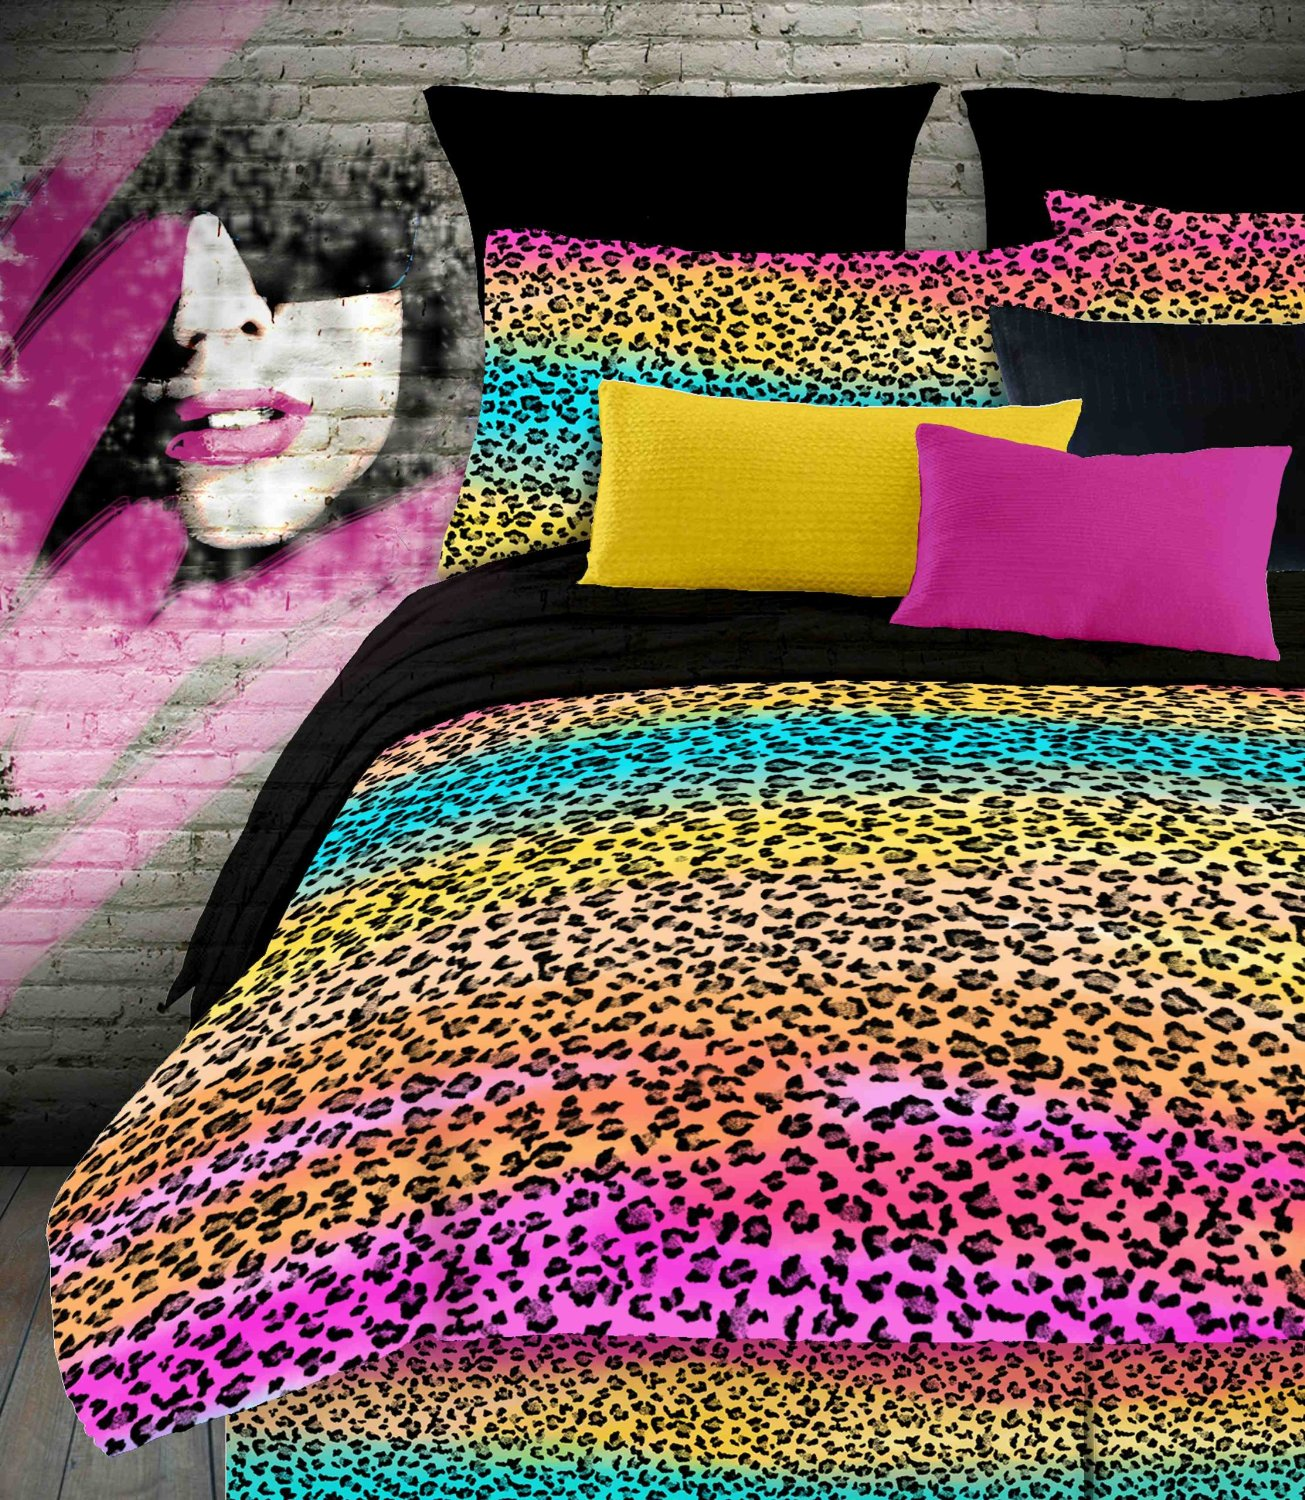 Leopard print and red bedding - Animal Print Bedding For Tween Girls Rainbow Leopard Comforter Set